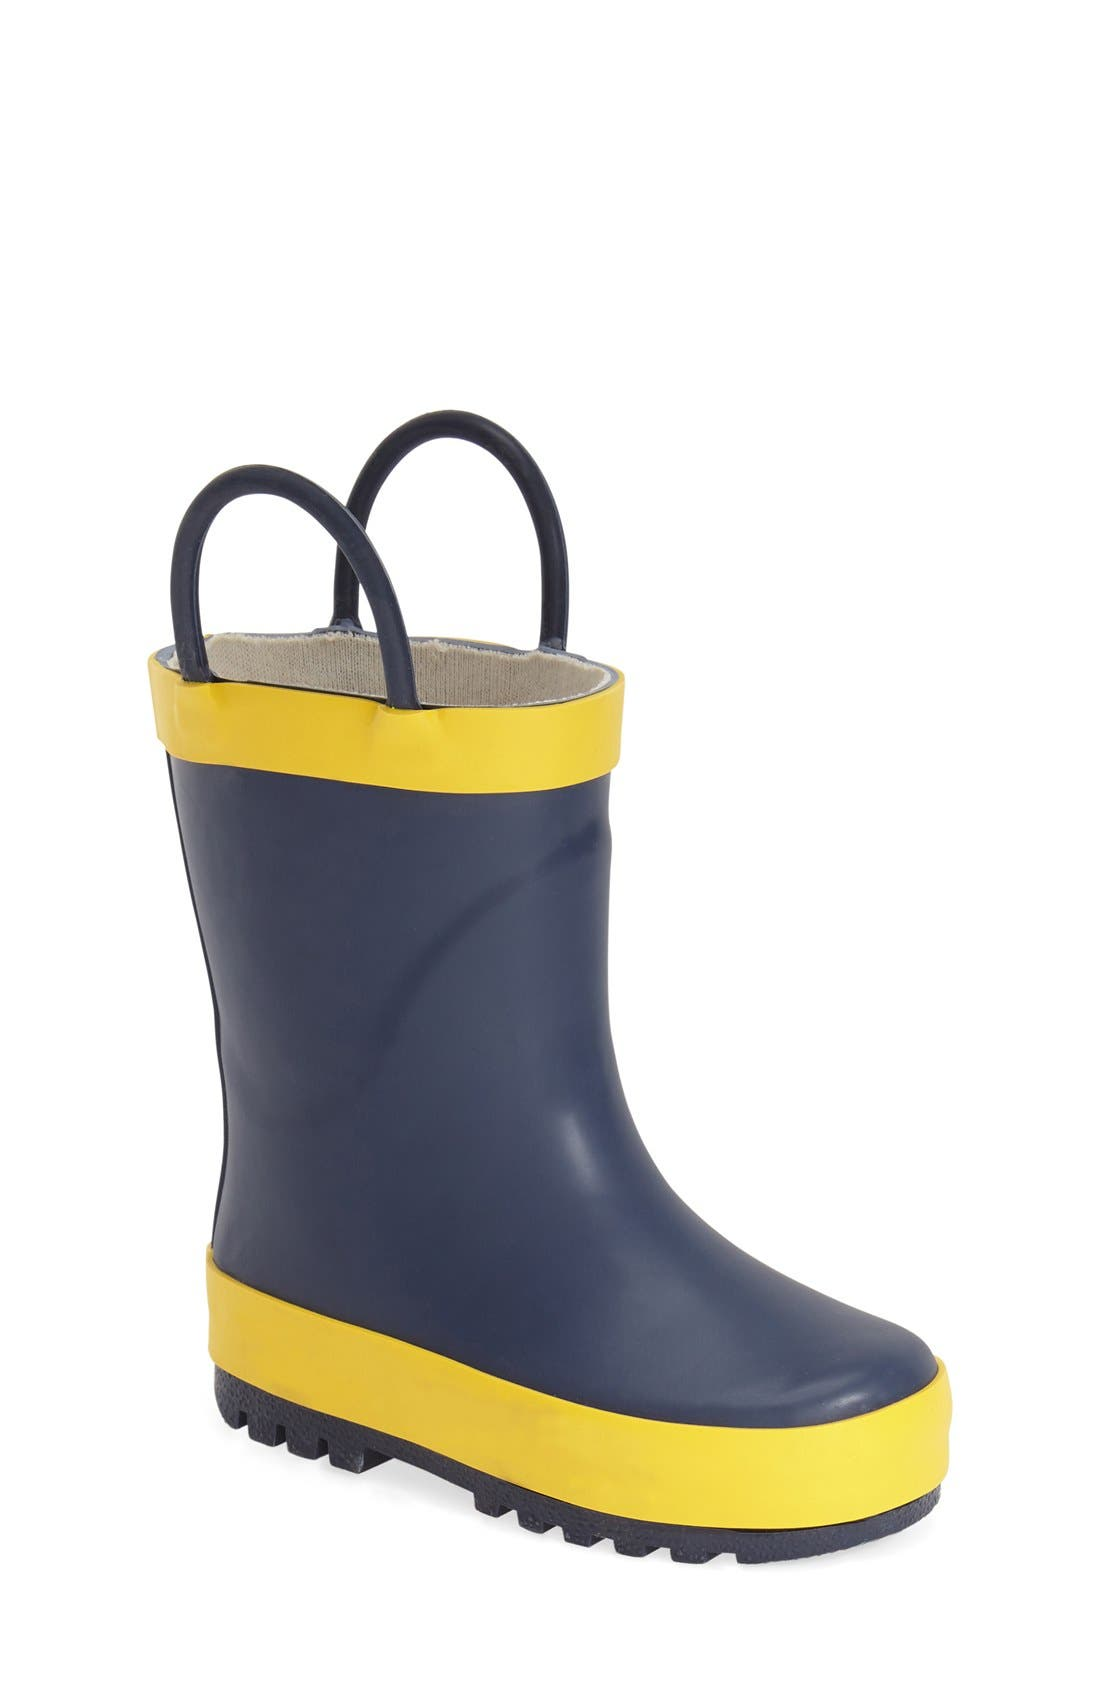 TUCKER + TATE 'Puddle' Rain Boot